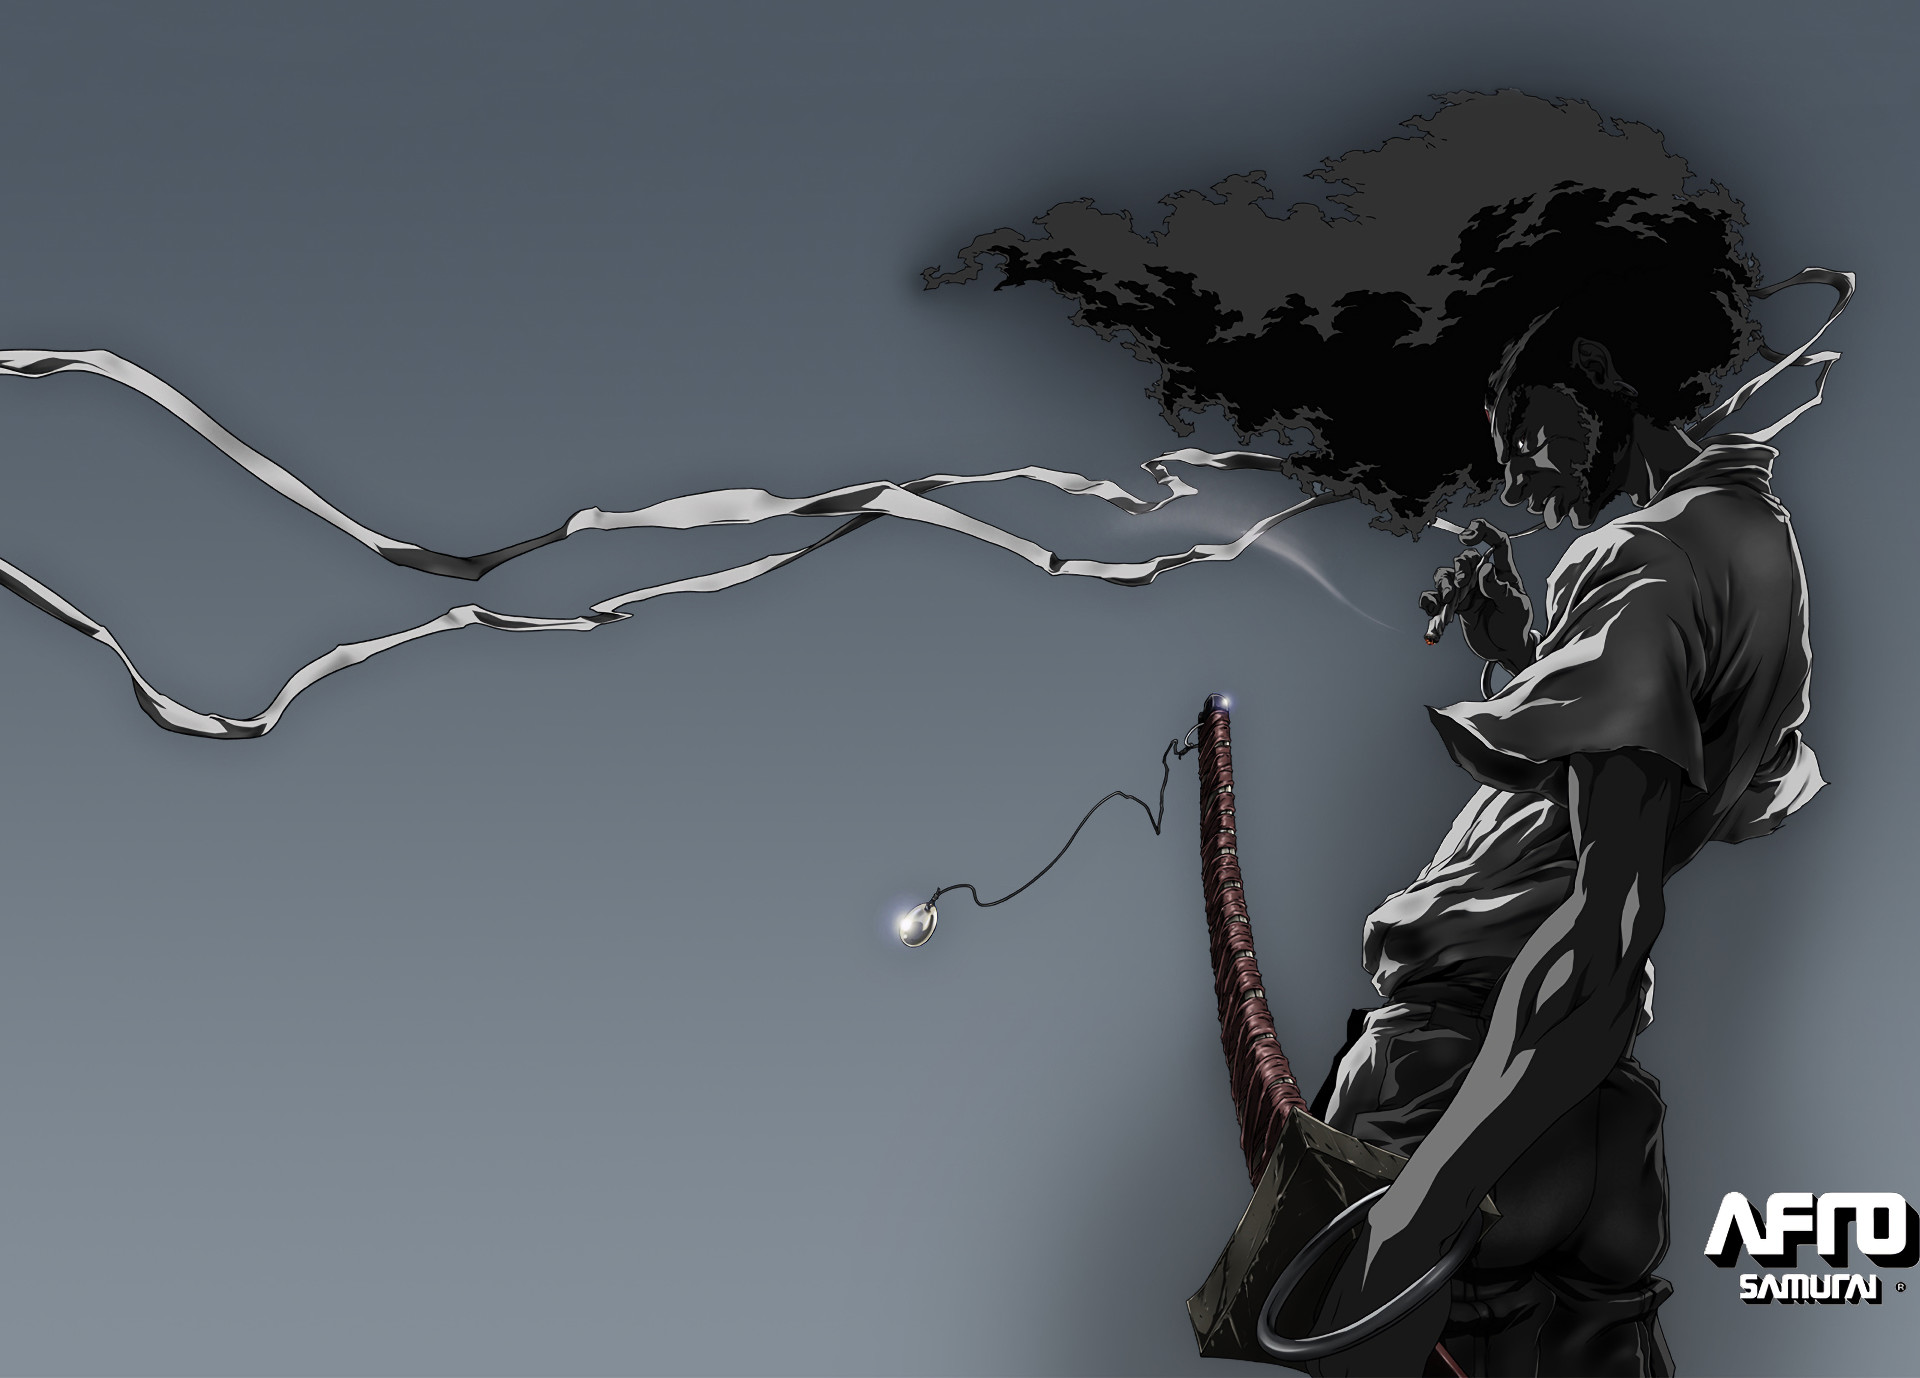 Res: 1920x1378, HD Wallpaper | Background Image ID:28228.  Anime Afro Samurai